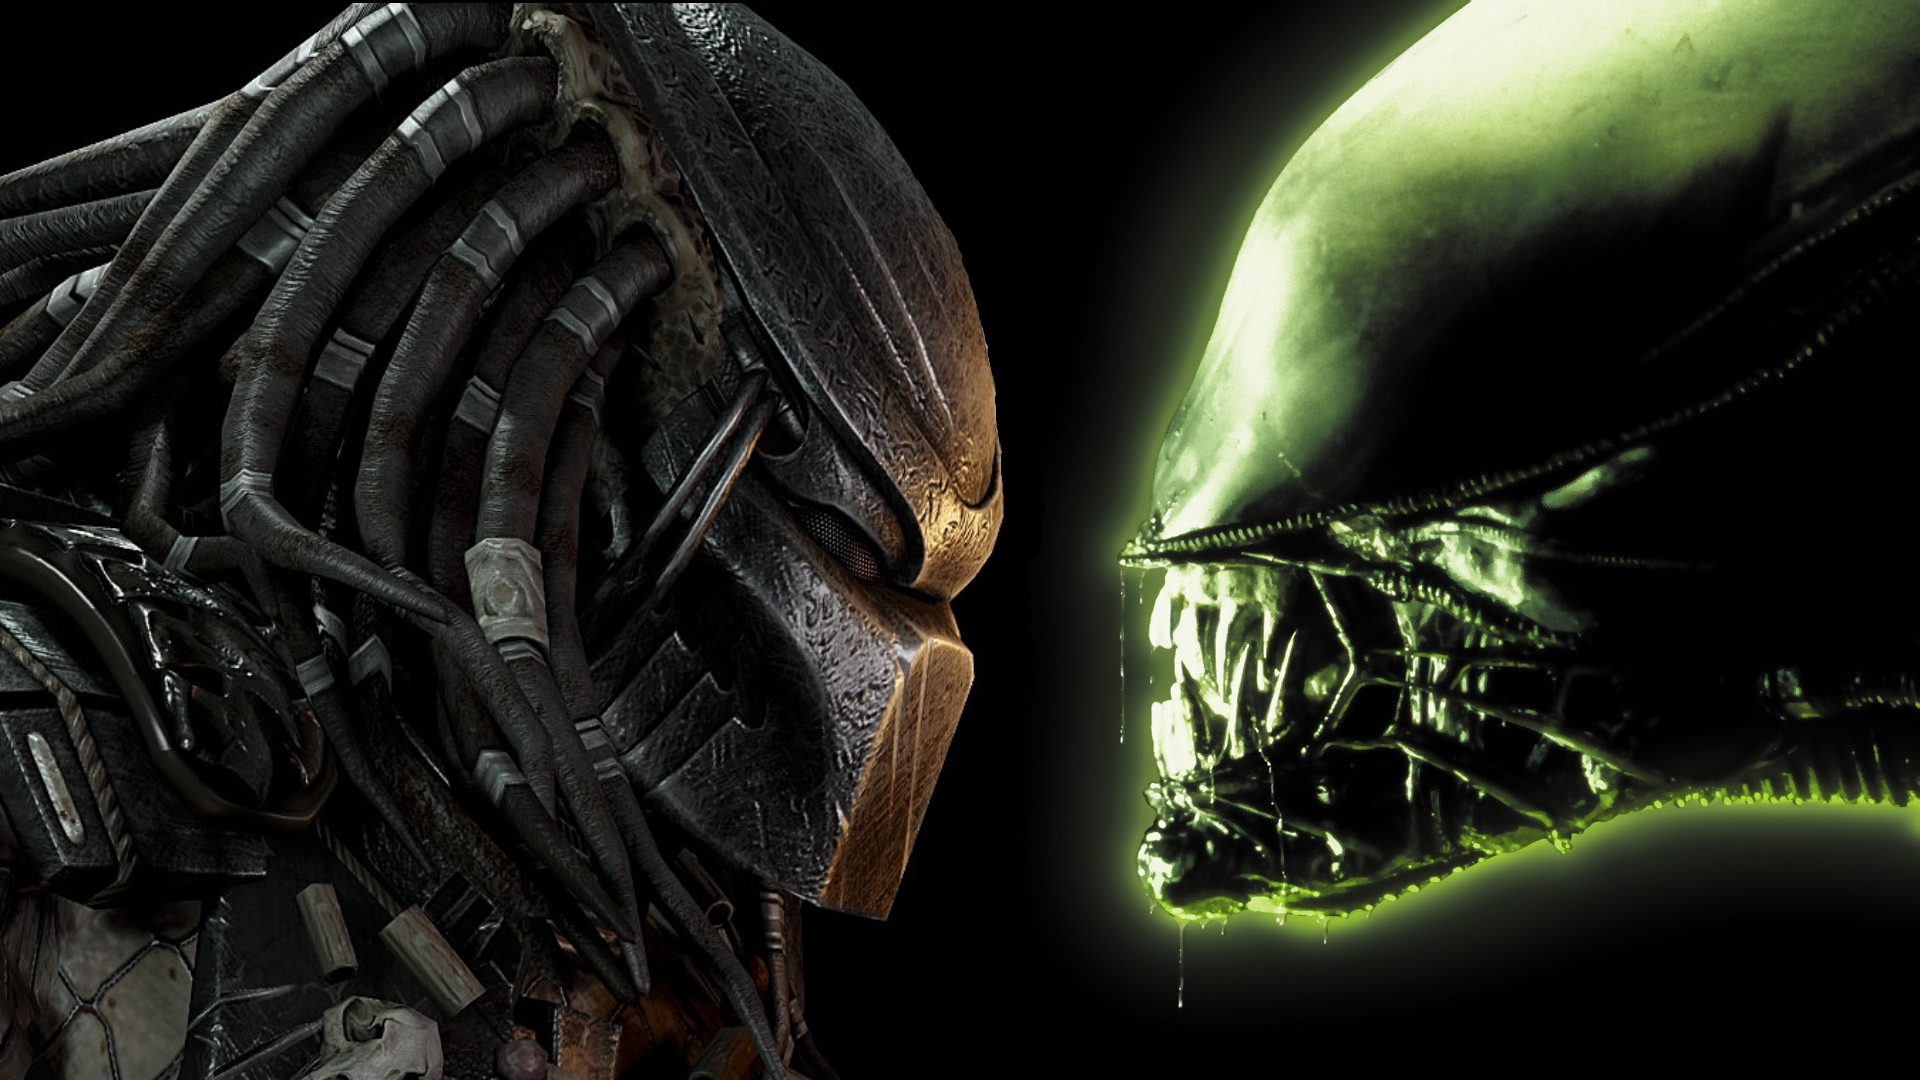 Alien Vs. Predator #1